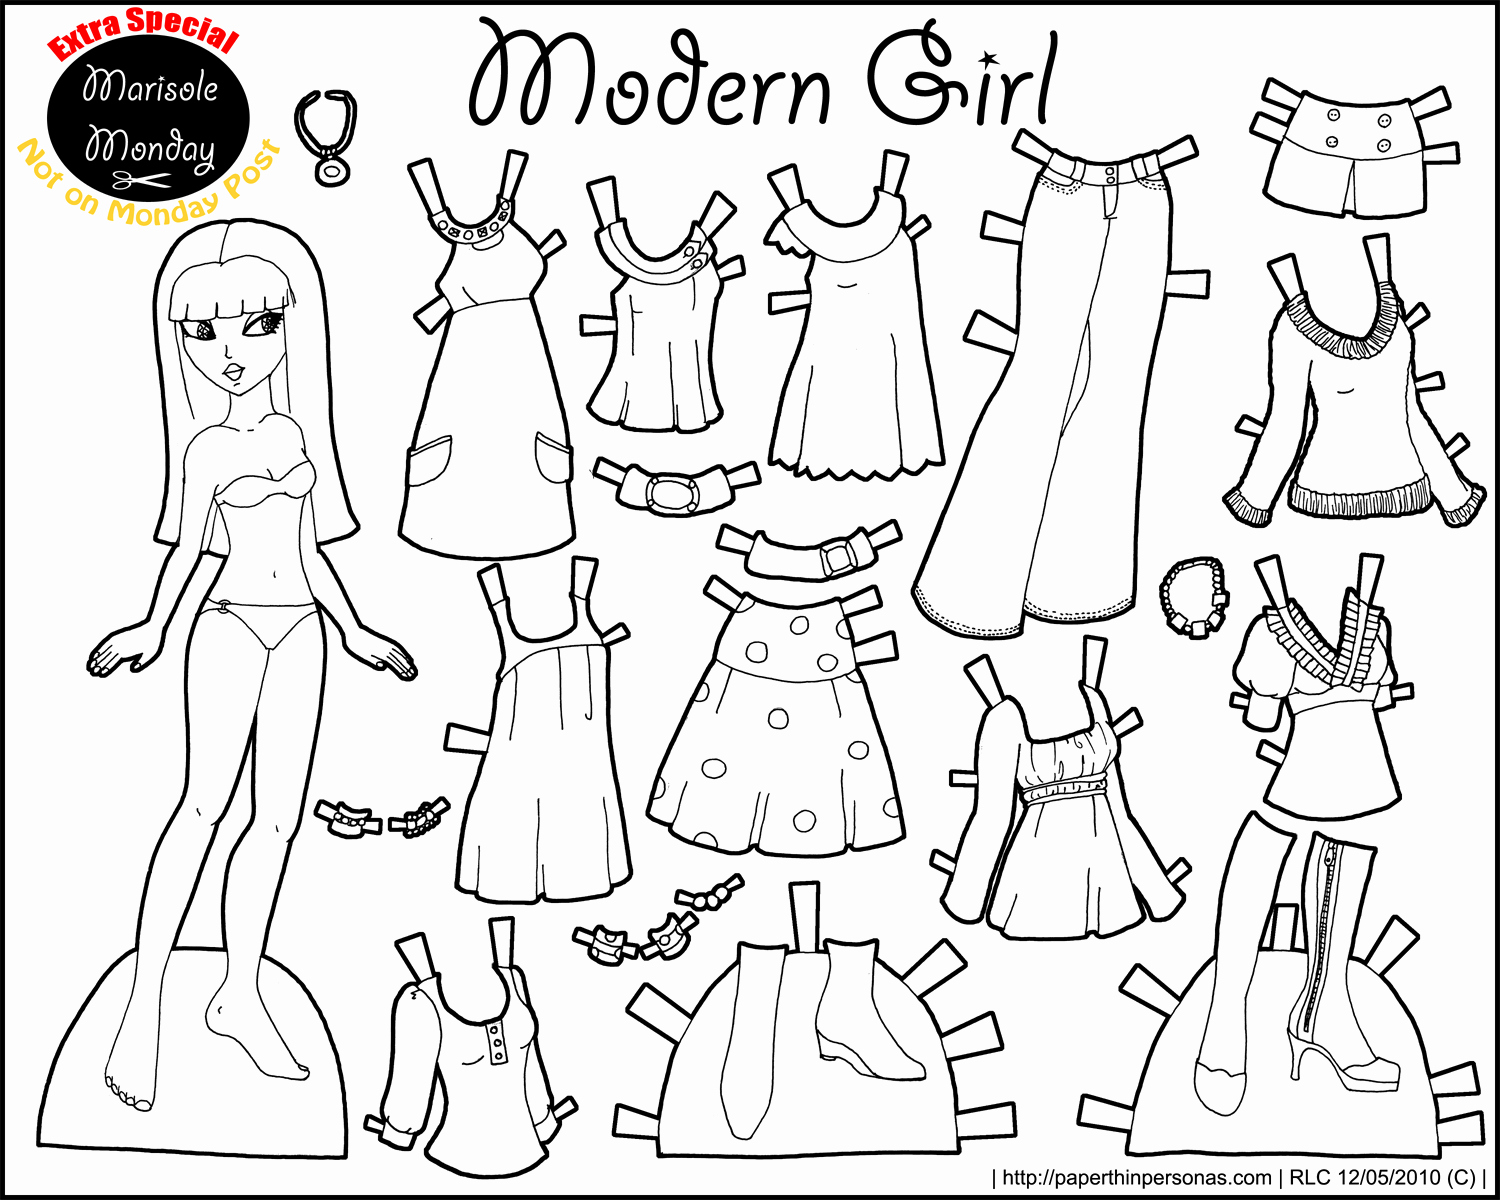 Printable Paper Dolls Template Awesome Marisole Monday Modern Girl In Black & White